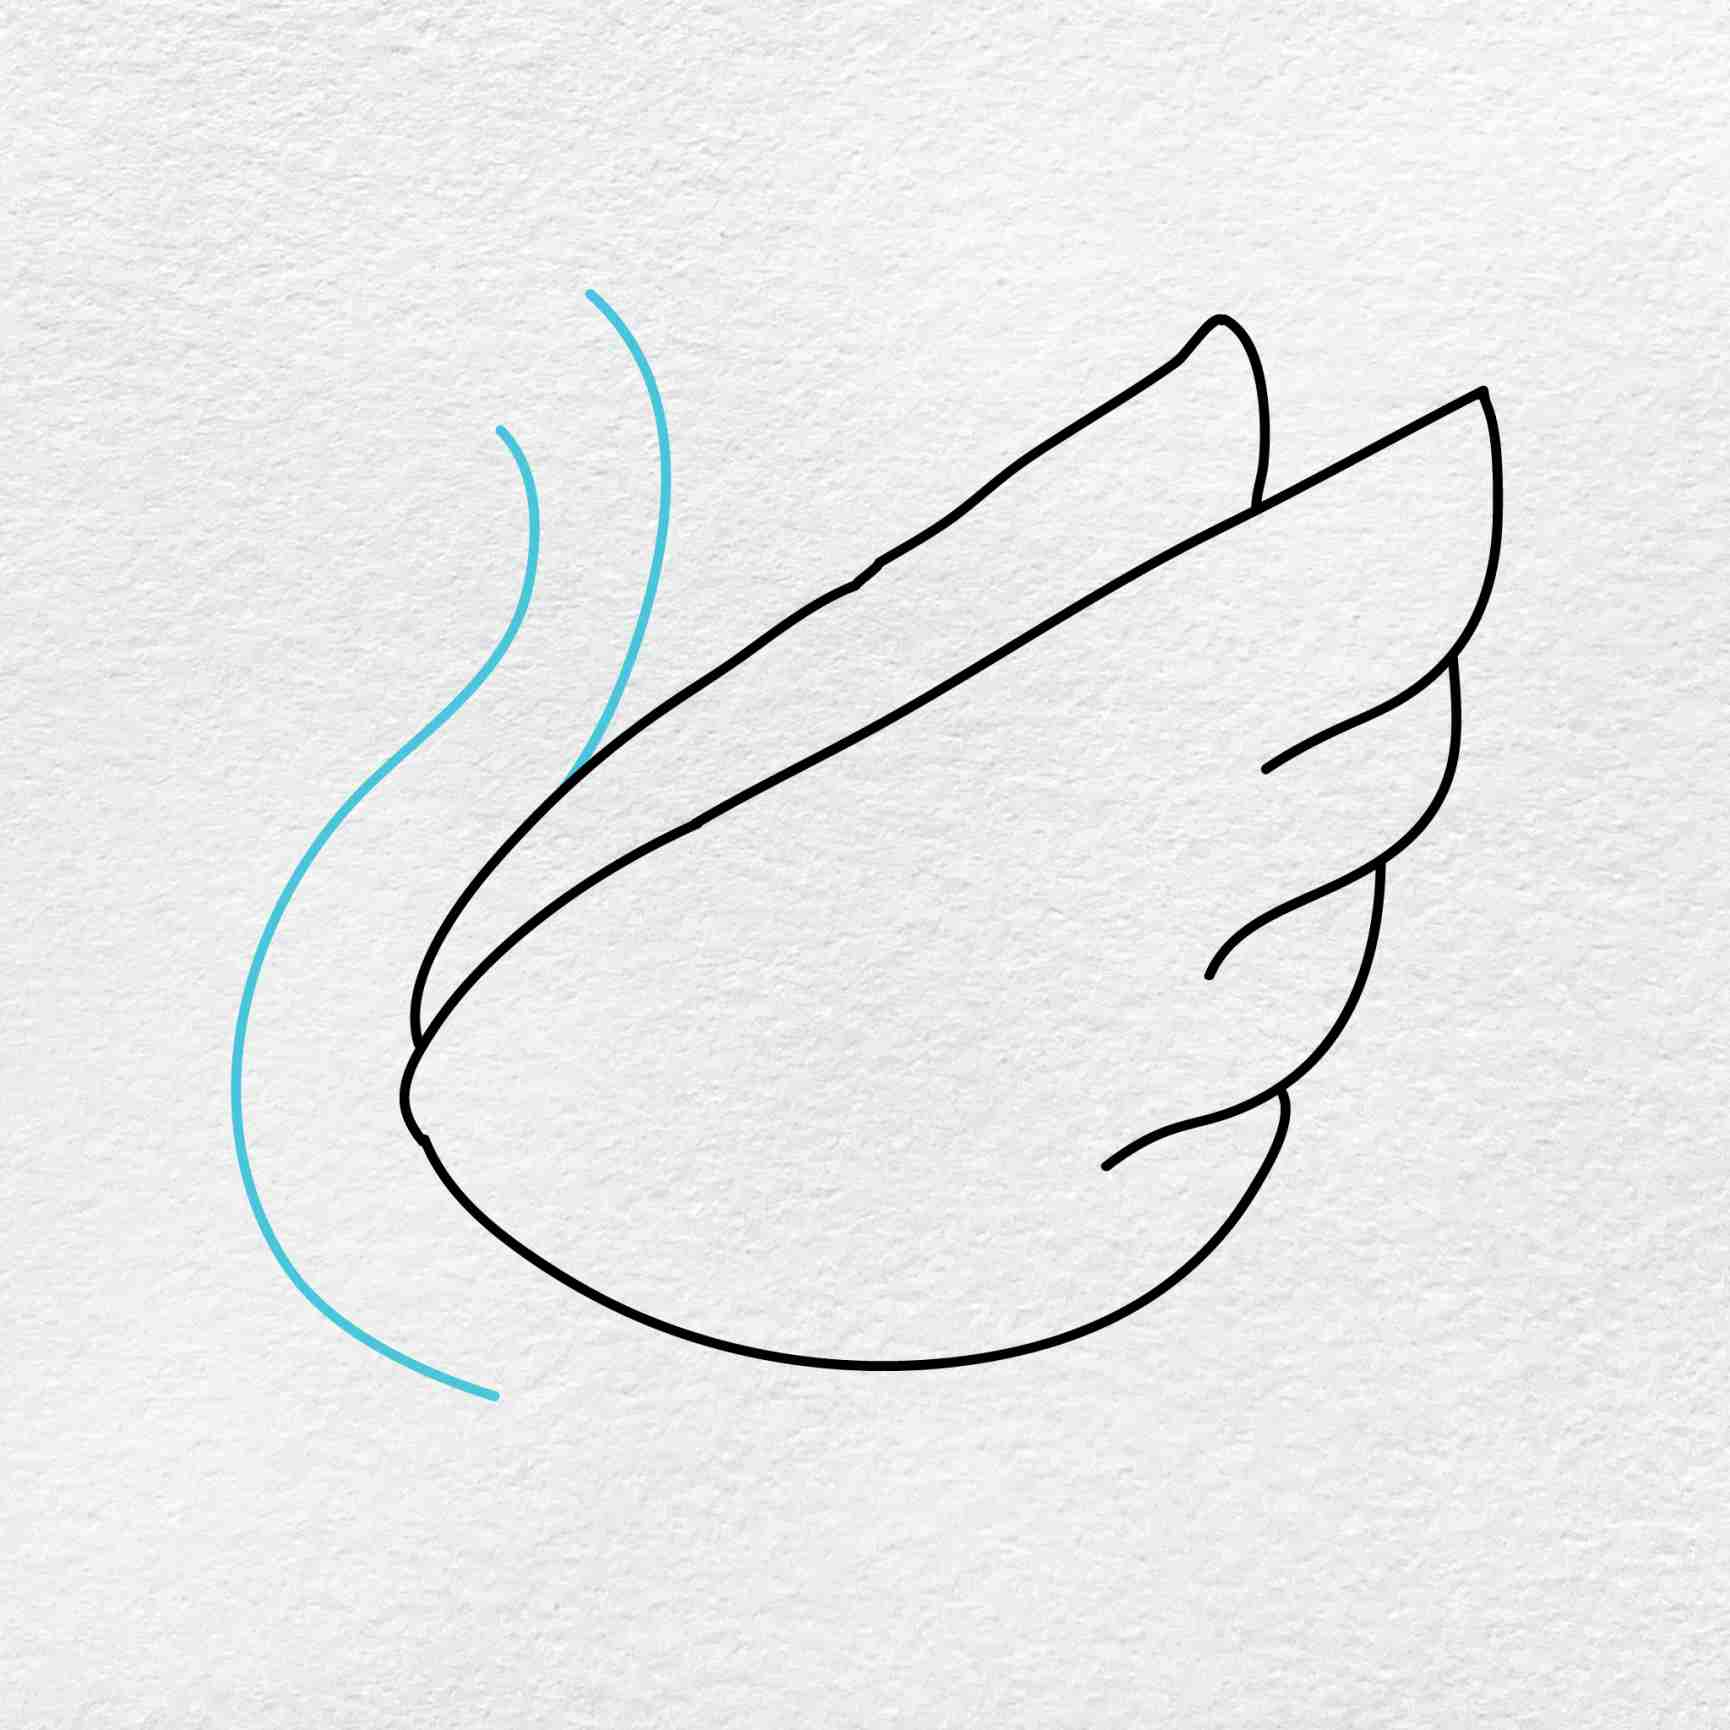 How To Draw A Swan: Step 3